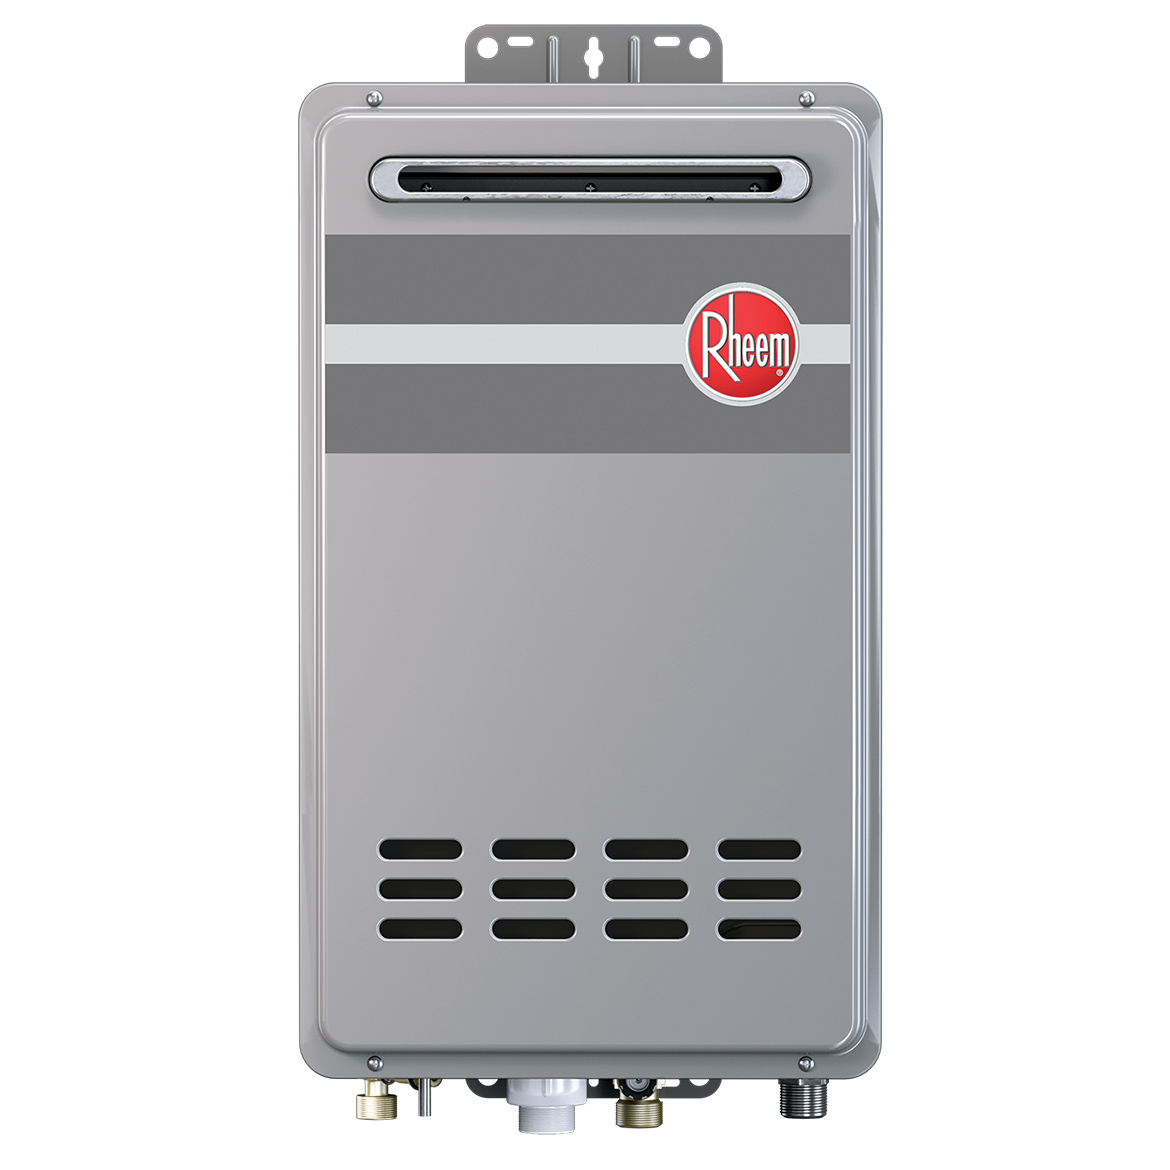 RHEEM RTG-84XLN Outdoor Tankless Natural Gas Water Heater...